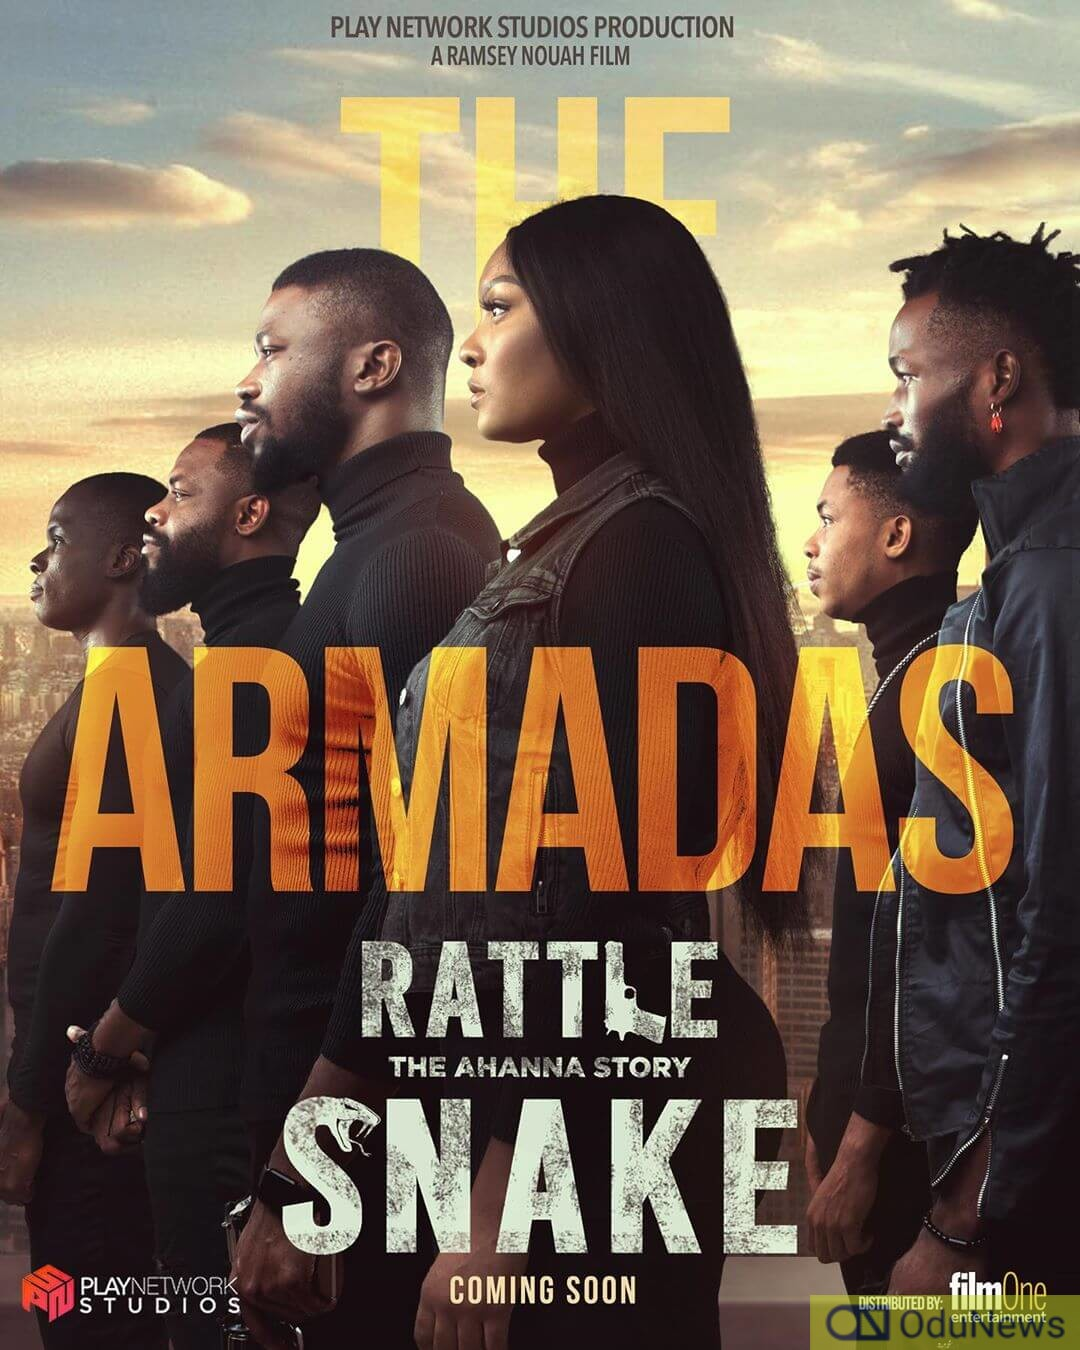 The Cast poster for RATTLE SNAKE: THE AHANNA STORY